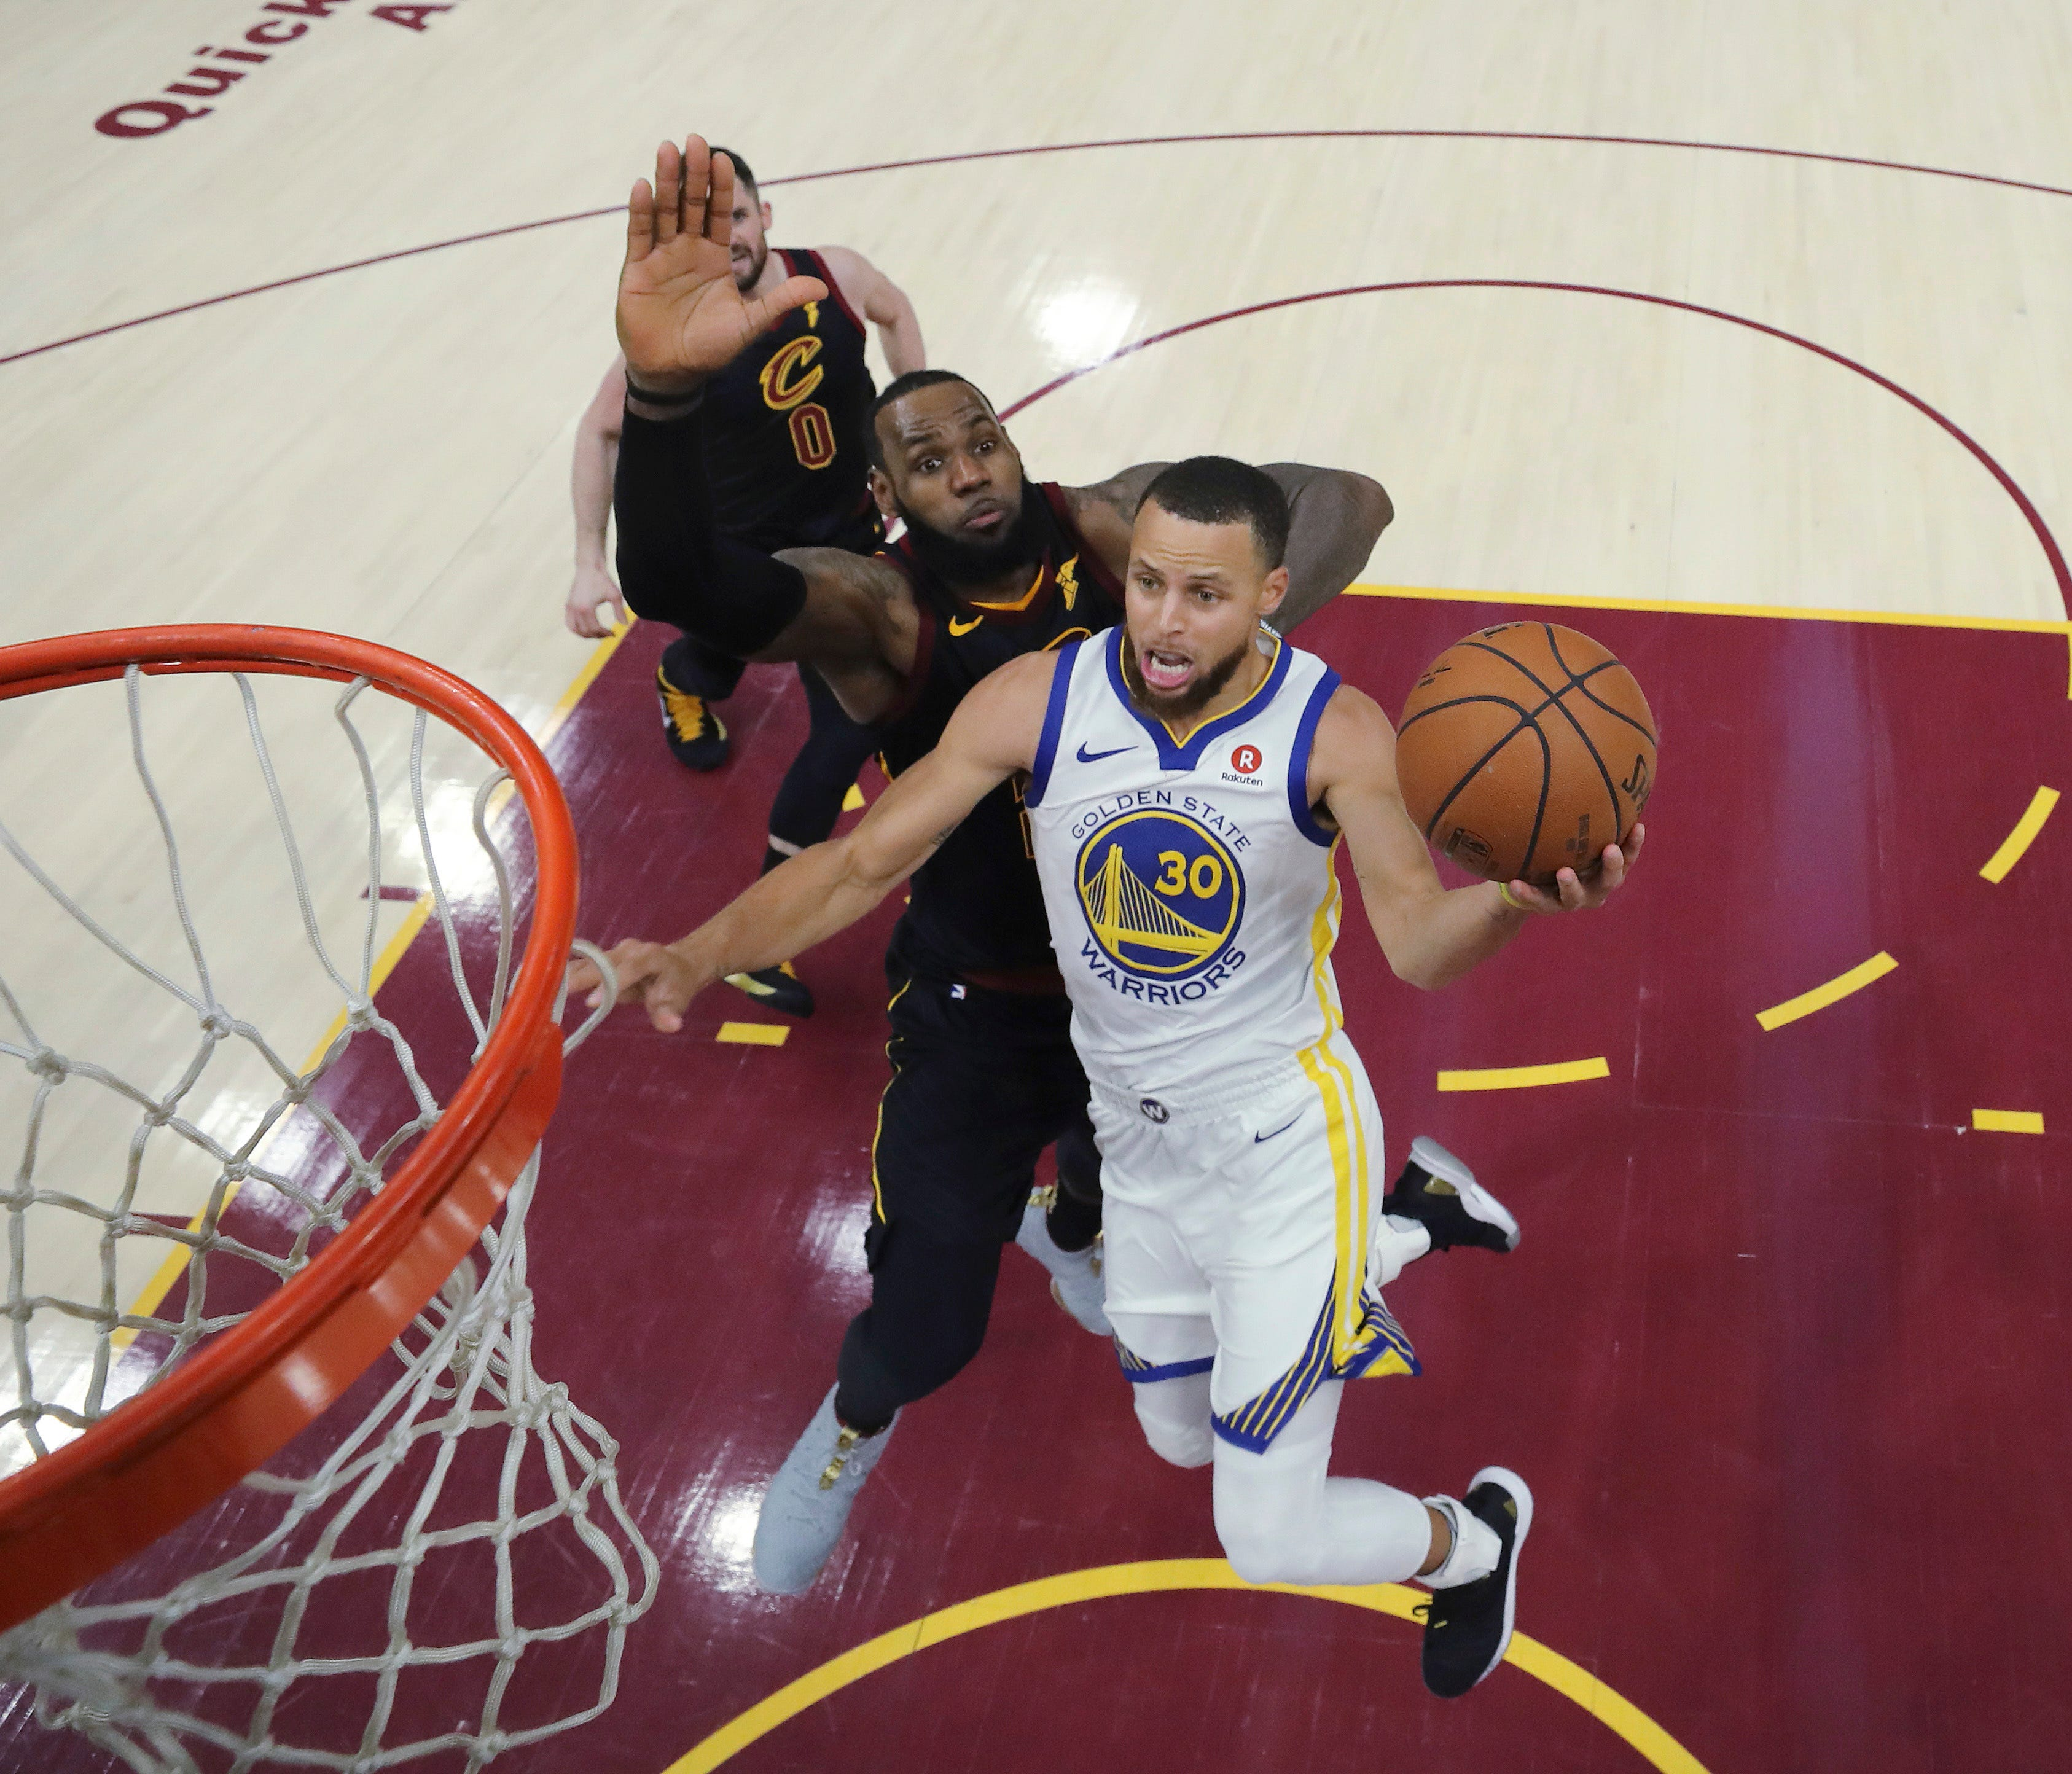 Golden State Warriors' Stephen Curry shoots next to Cleveland Cavaliers' LeBron James during the second half of Game 3 of basketball's NBA Finals, Wednesday, June 6, 2018, in Cleveland. The Warriors defeated the Cavaliers 110-102 to take a 3-0 lead i